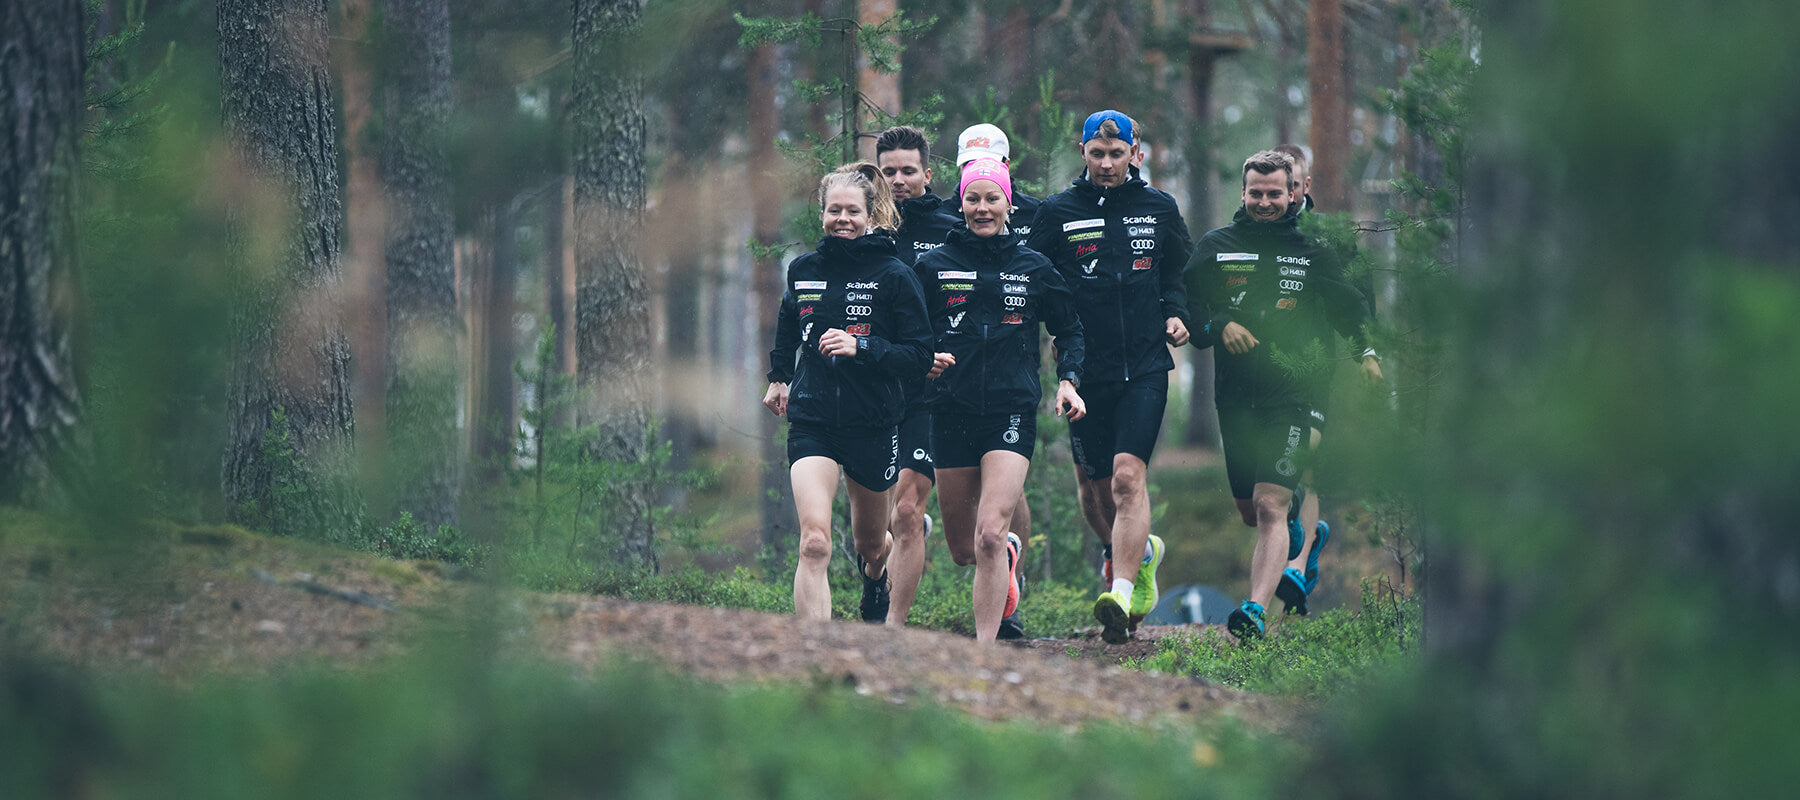 Halti official partner for the finnish cross country team